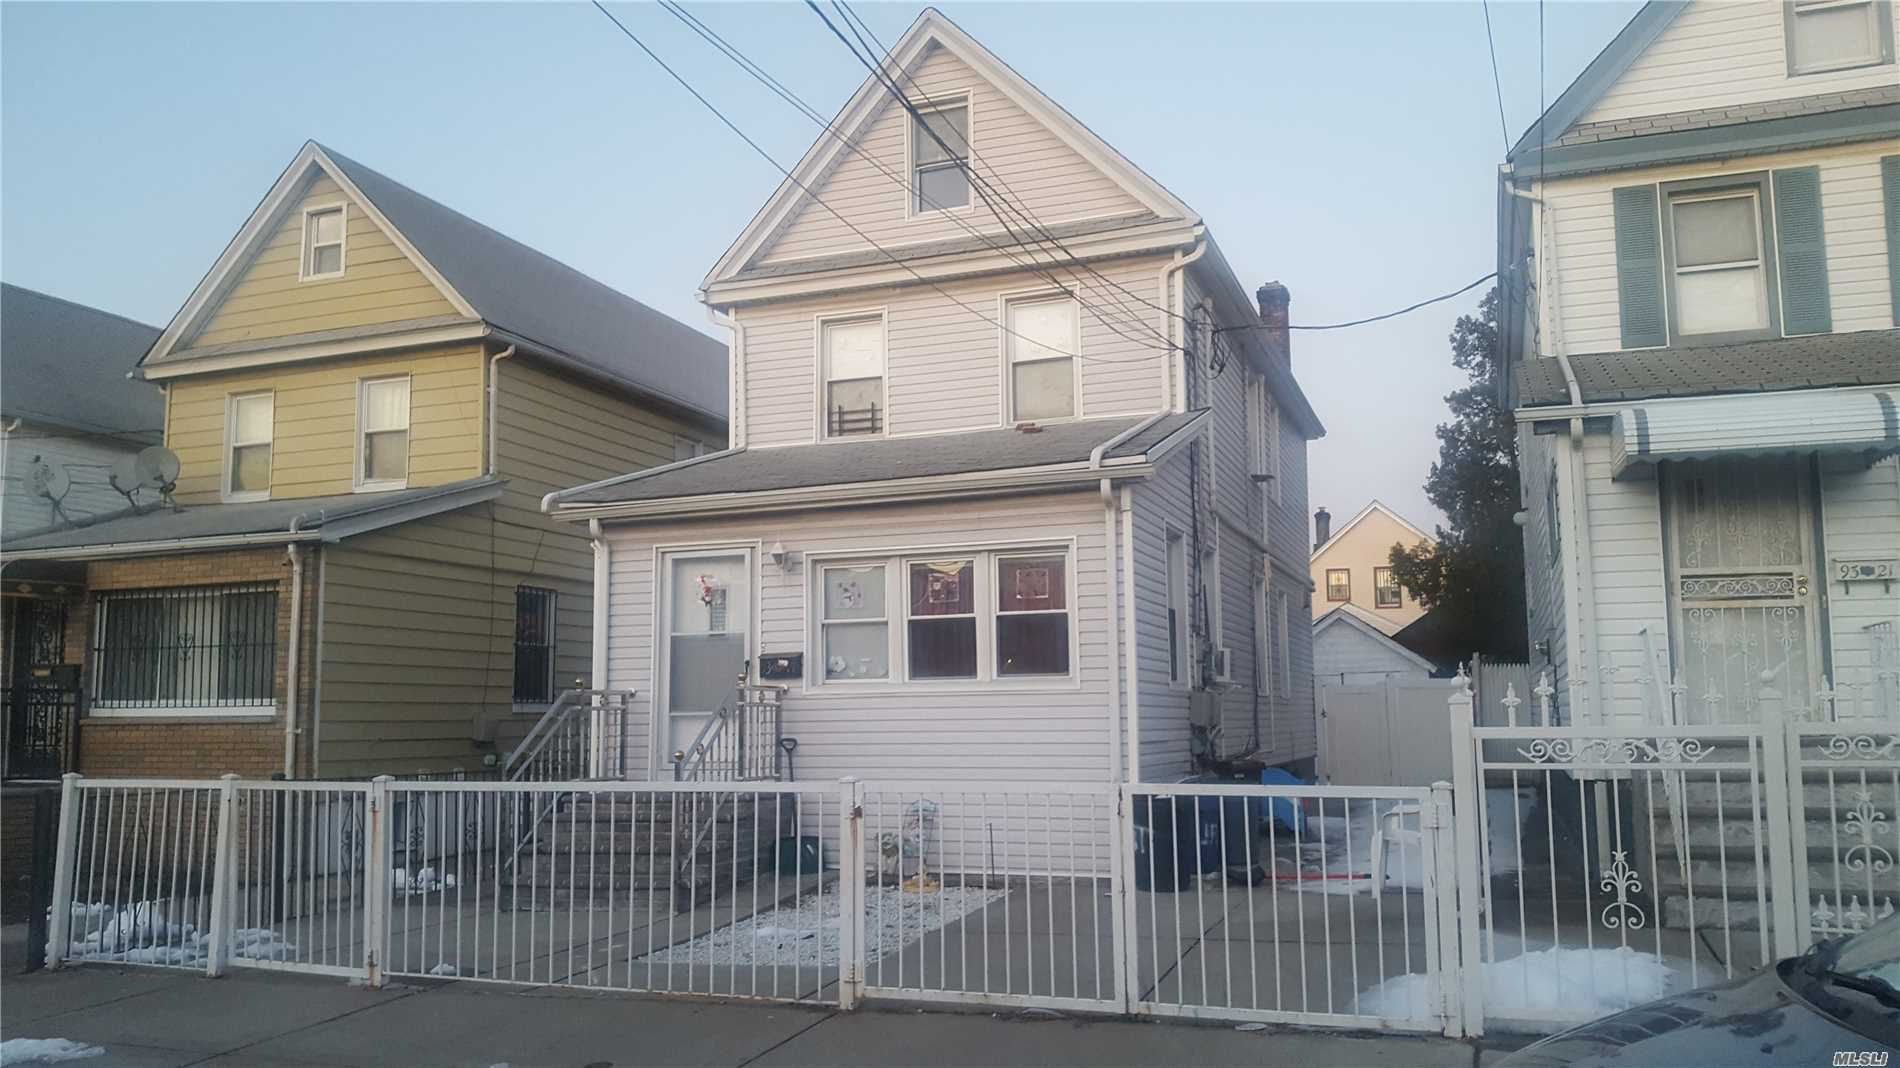 Charming Two Family Colonial In Queens Village. Great Investment Property For First Time Buyers. This Home Features Three Bedrooms, Two Full Baths, A Full Finished Basement, Additional Room In Attic, Private Driveway, New Siding, New Windows and Fencing Around The Property, Each apartment pays for their own Heat and A/C. It Is In Move In Condition!